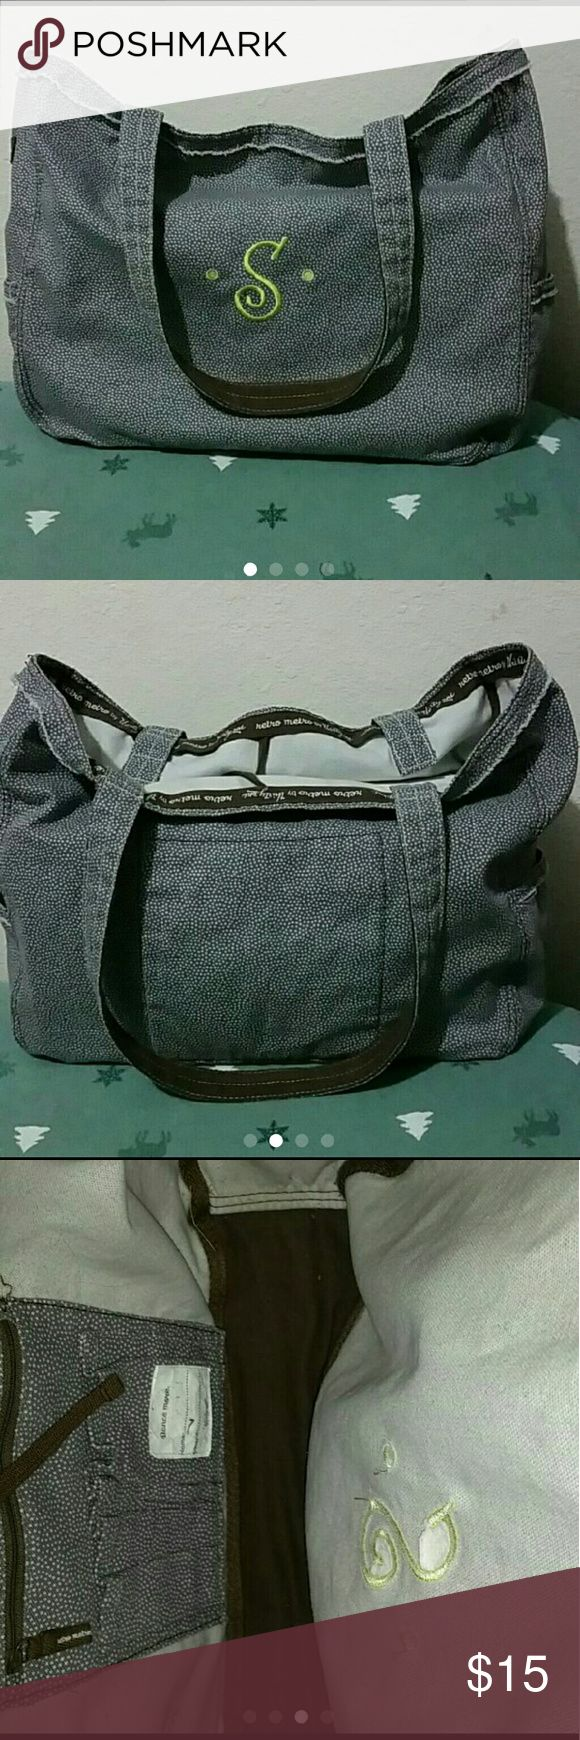 """Thirty-one retro metro large bag Thirty-one retro metro large bag with """"S"""" monogram in great condition Thirty-one Bags Totes"""